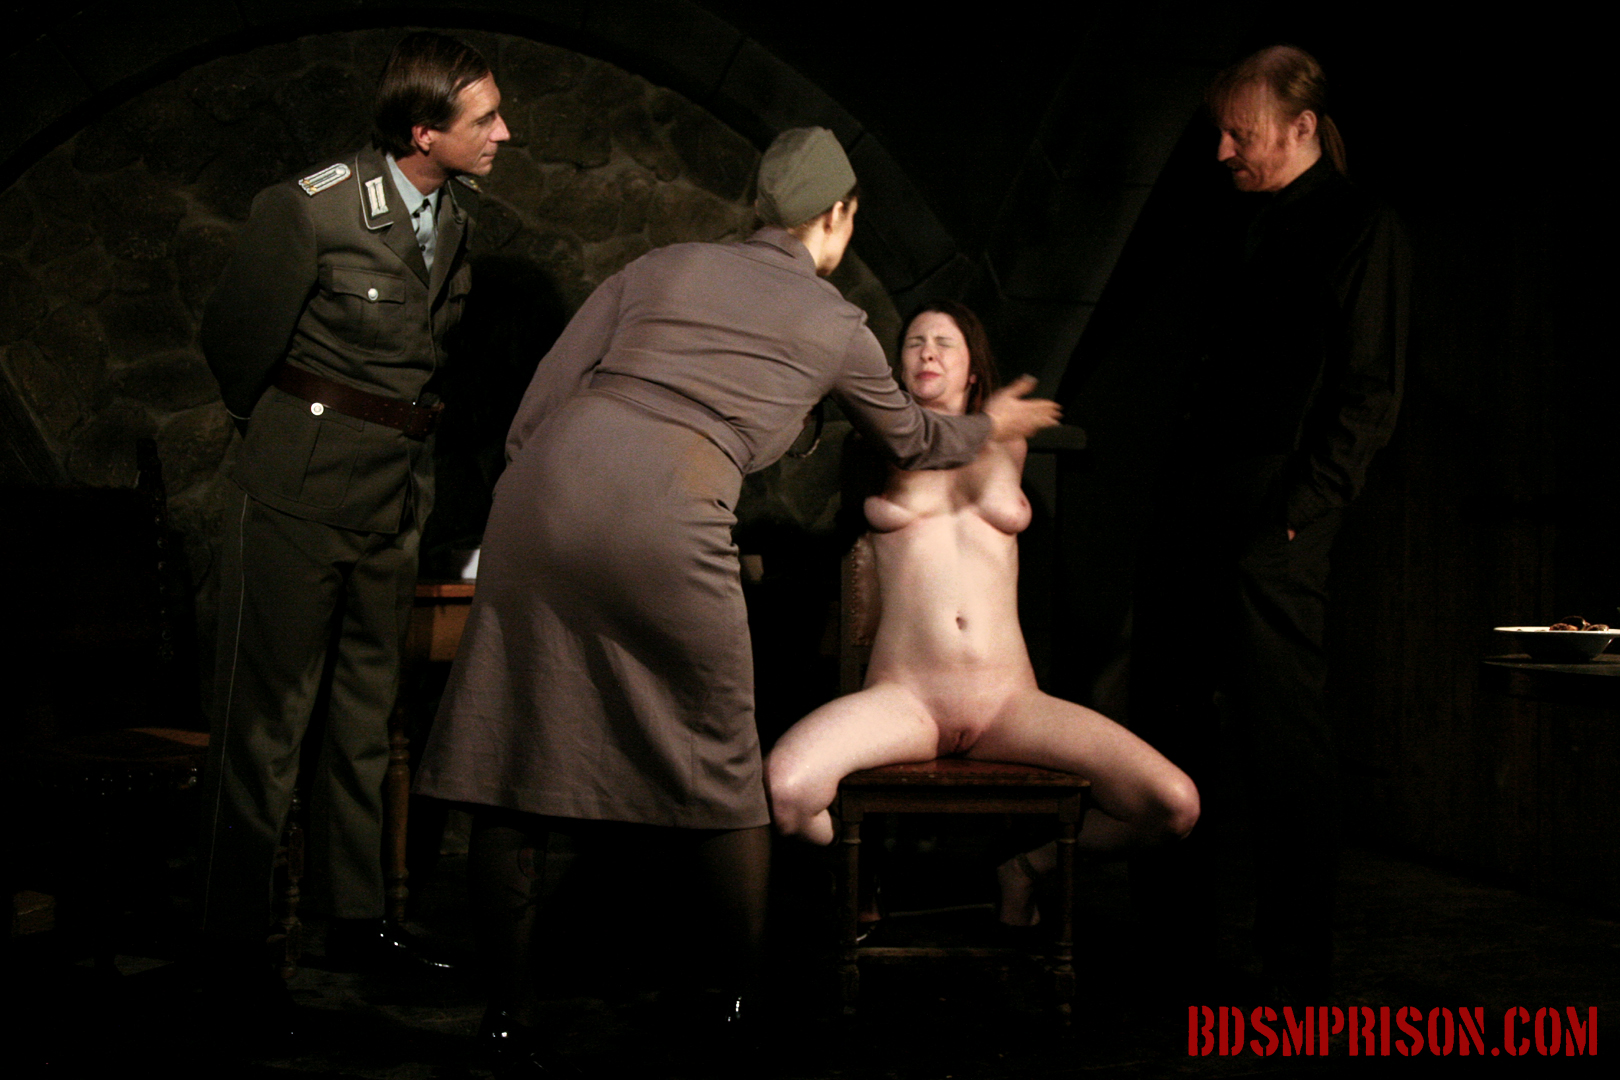 Sophie domination bondage kitty and nipple tortureded  sophie is a betting loser and has amounted quite a debt  so sophie is imprisoned in the institute for punishment  two prison guards and bdsm major marcowicz joins the night for her pleasure  sophie wi. Sophie is a betting loser and has amounted quite a debt. So Sophie is imprisoned in the Institute for punishment. Two prison guards and BDSM Major Marcowicz joins the night for her pleasure. Sophie will endure domination, bondage, breast, pussy and nipple tortured with clamps, intense spanking, whipping and smacking on her thighs, boobs and face, humiliation, sex toys, nipple weights. She has to smile the entire time, every slap.